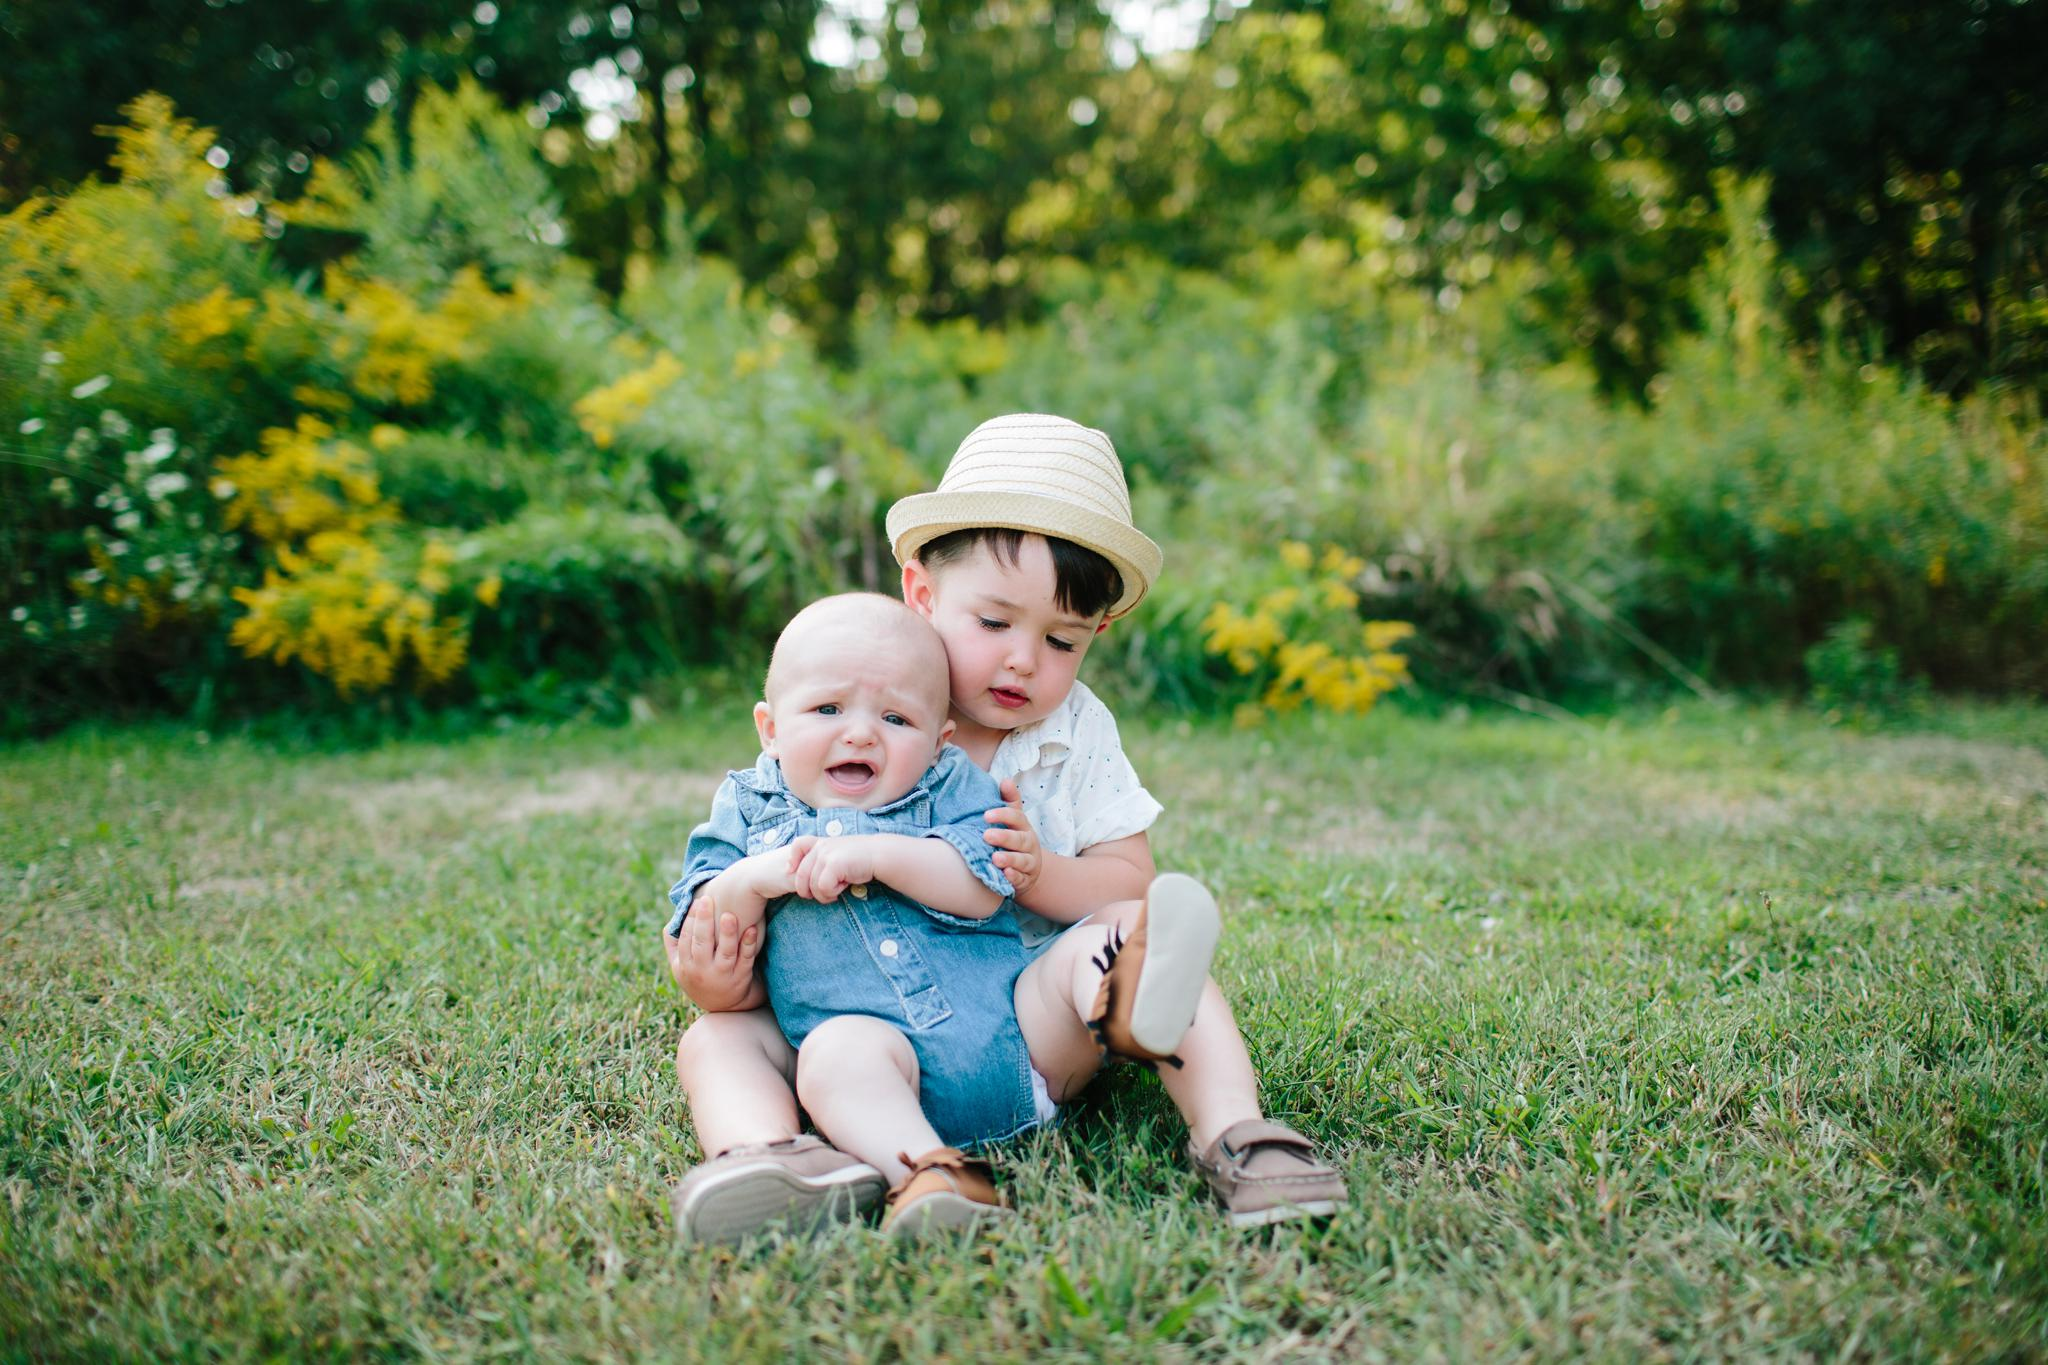 finley_blog_photographer_family_9803.jpg